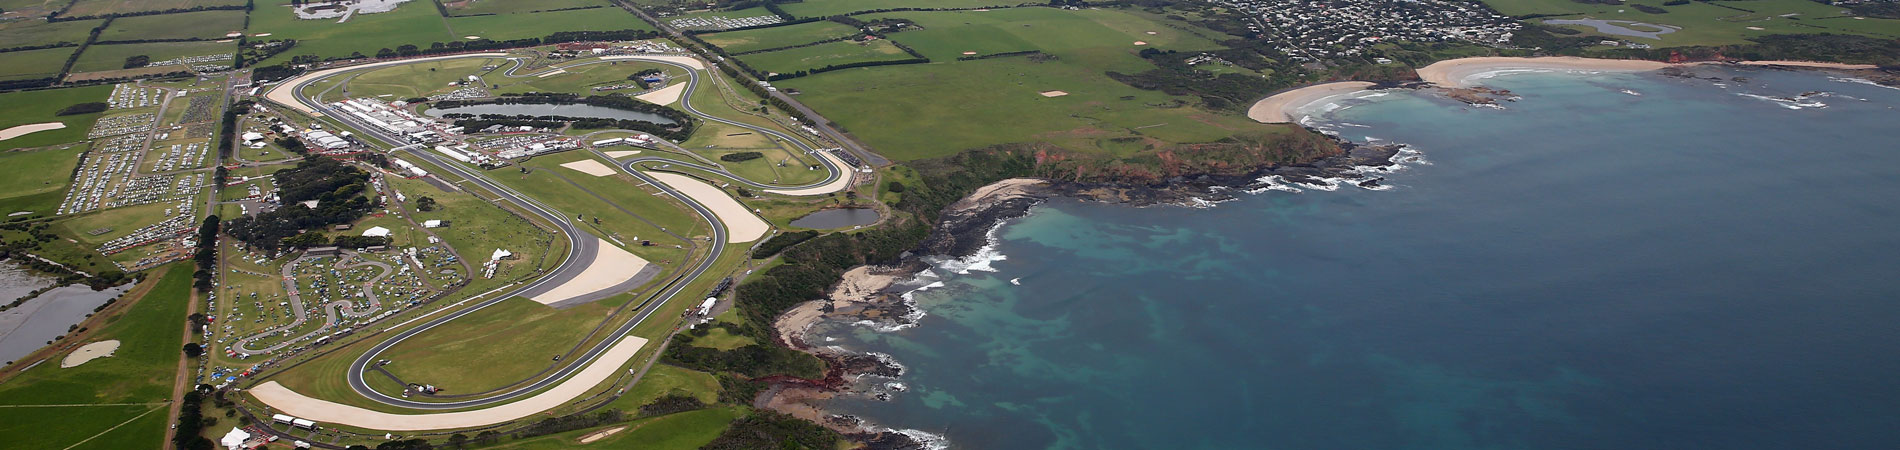 Aerial view of the Phillip Island circuit